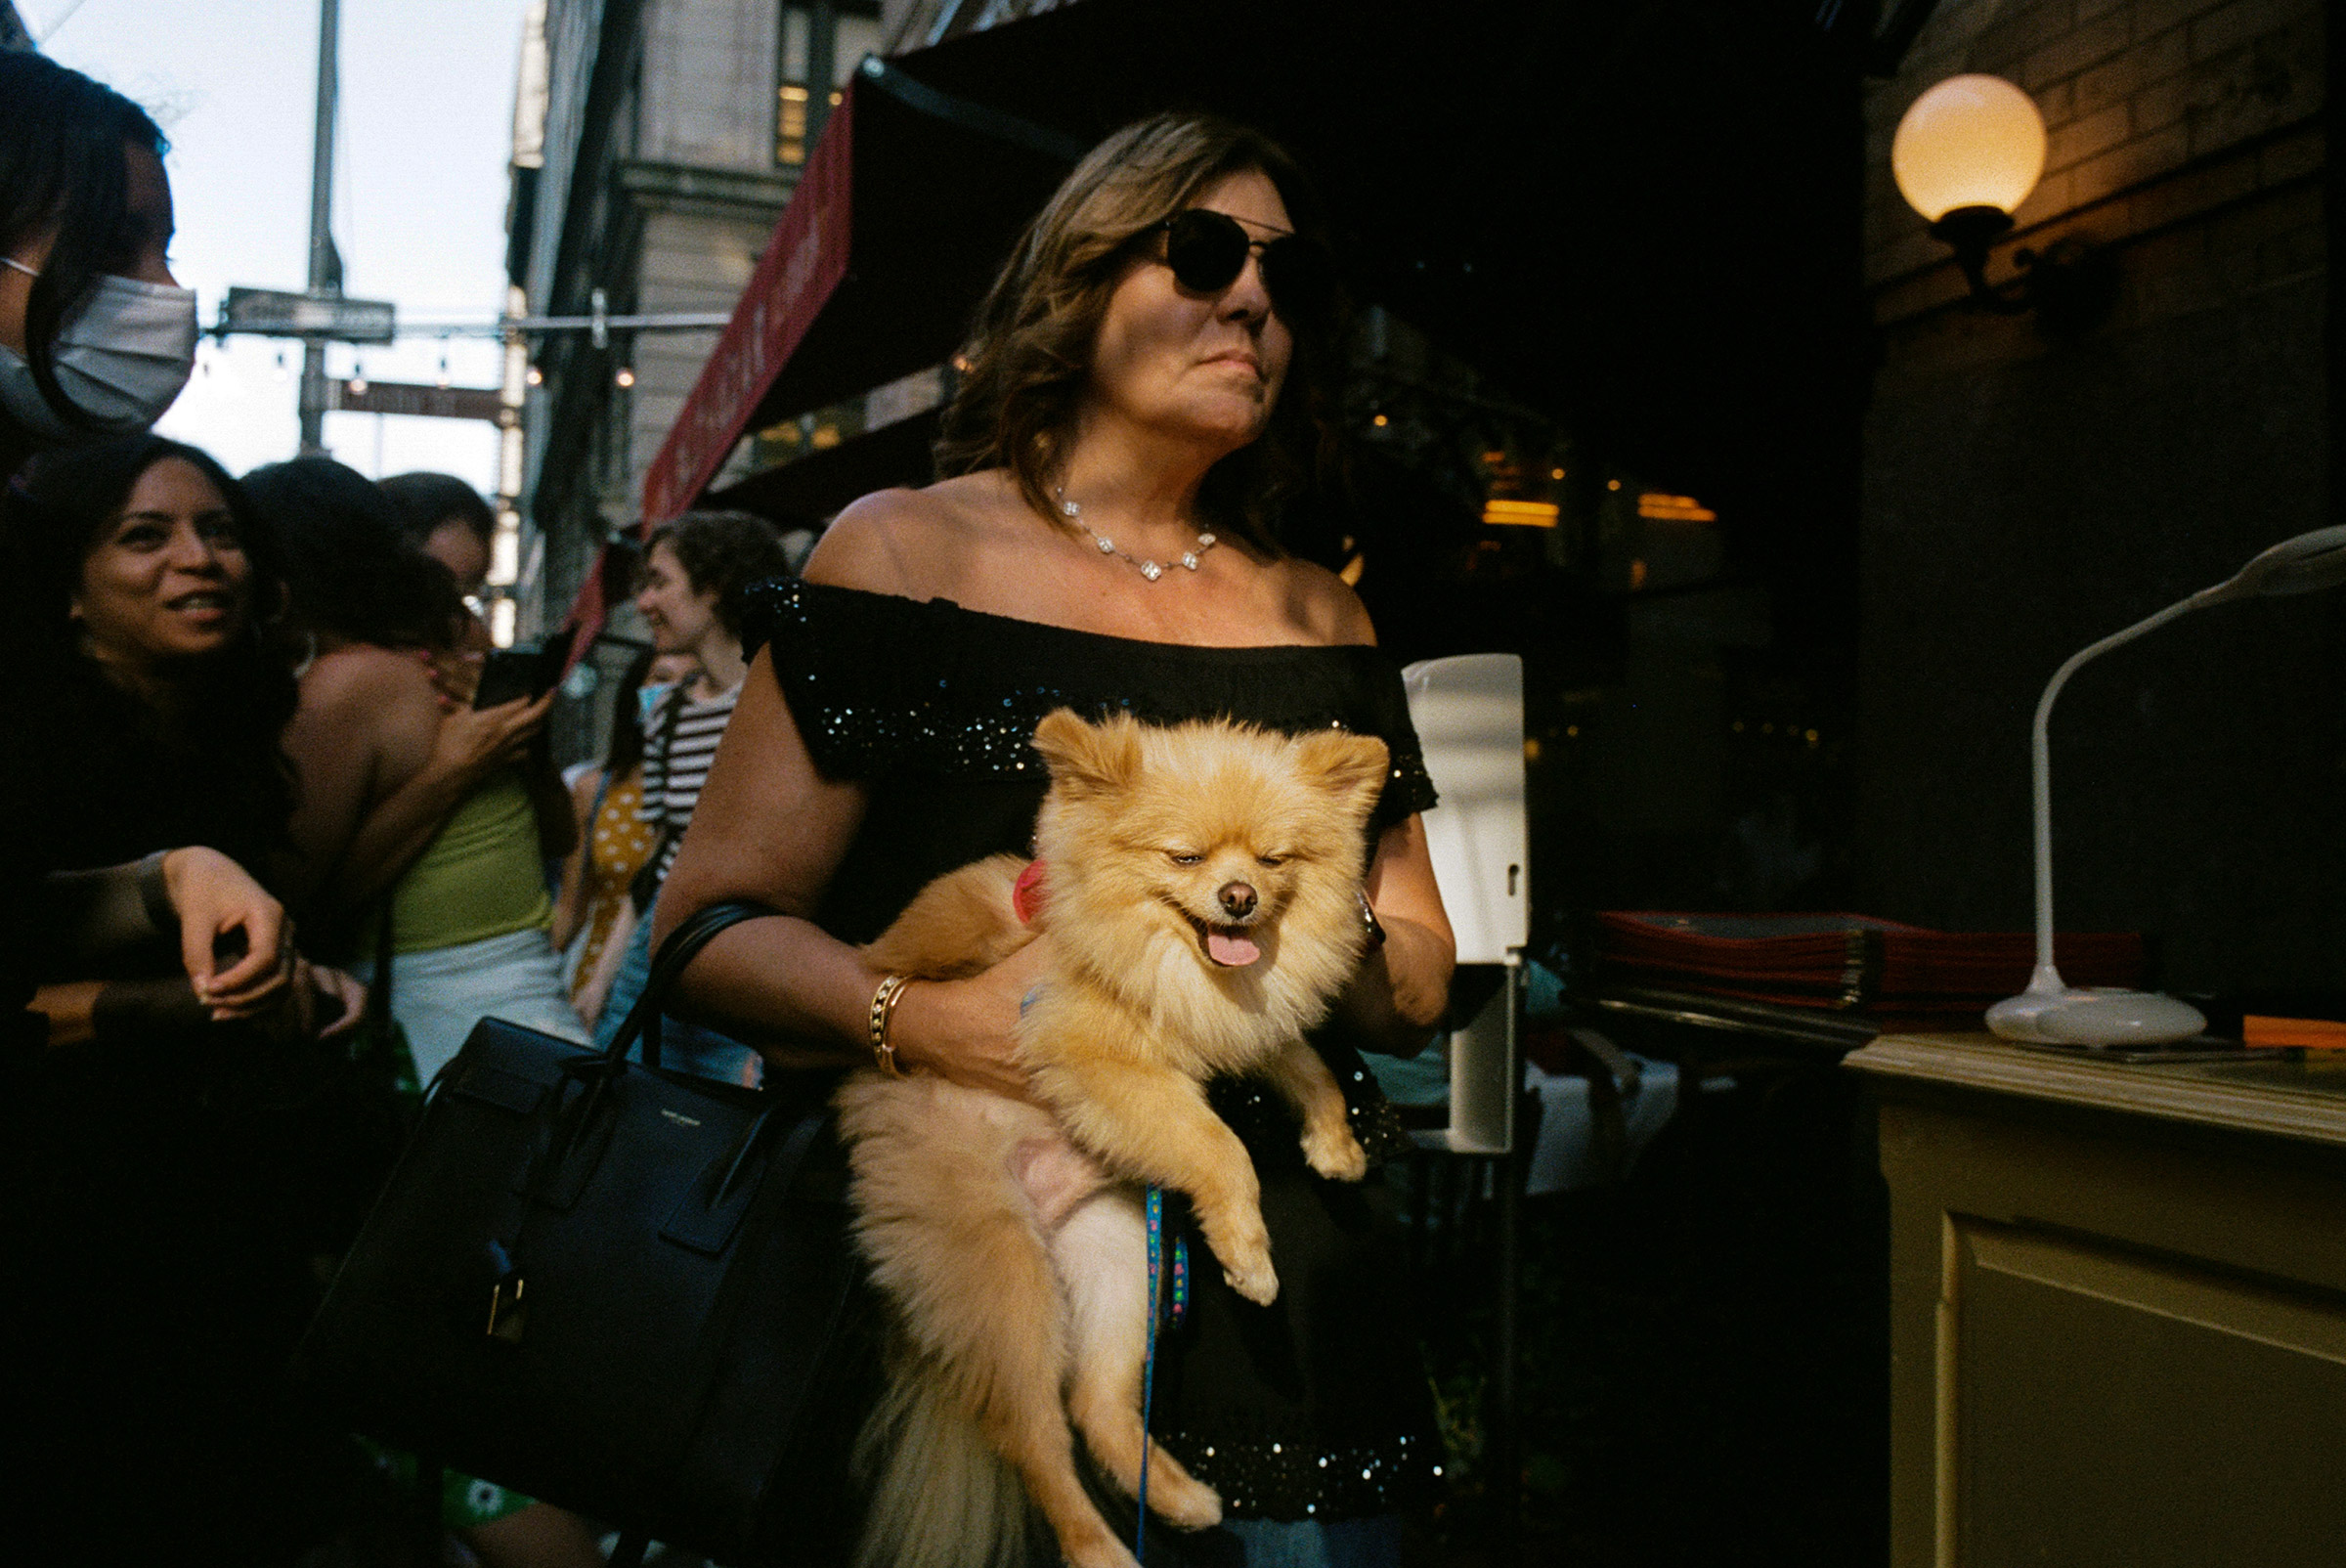 A woman carries her Pomeranian past Balthazar at sunset on Spring Street, Aug. 1, 2021.